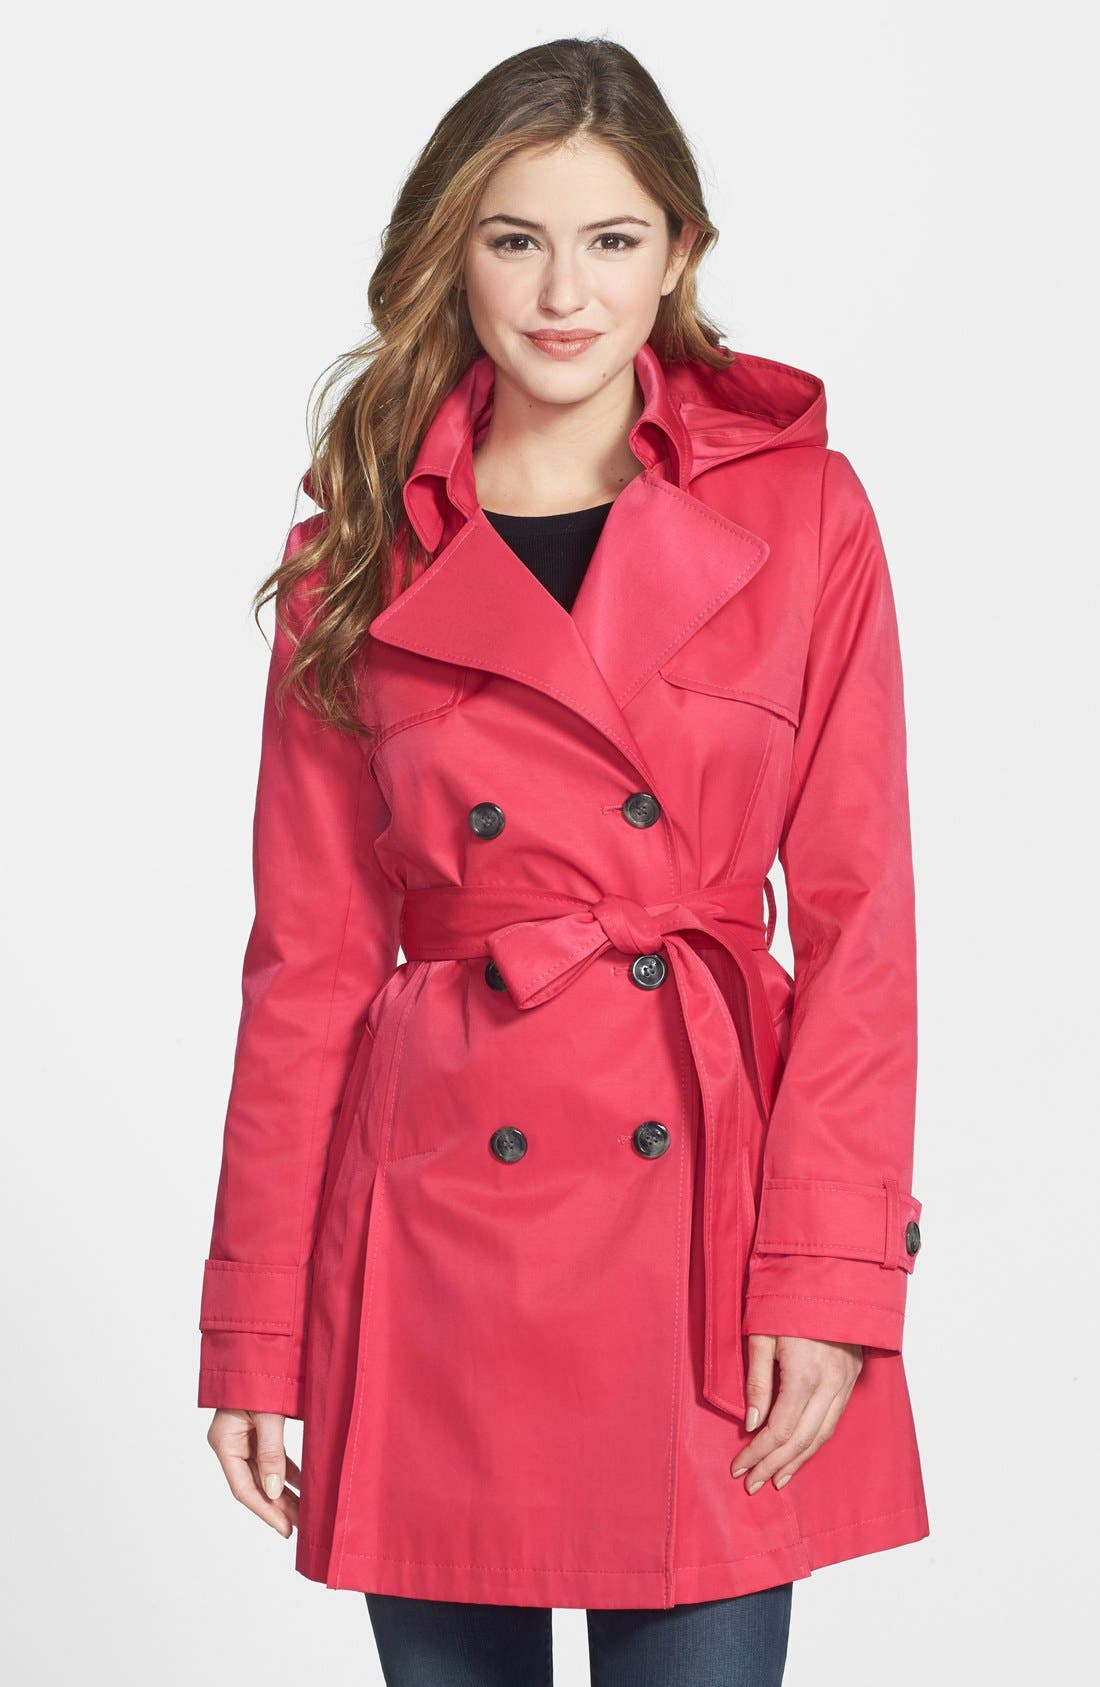 Main Image - DKNY 'Abby' Double Breasted Trench Coat with Detachable Hood (Regular & Petite)